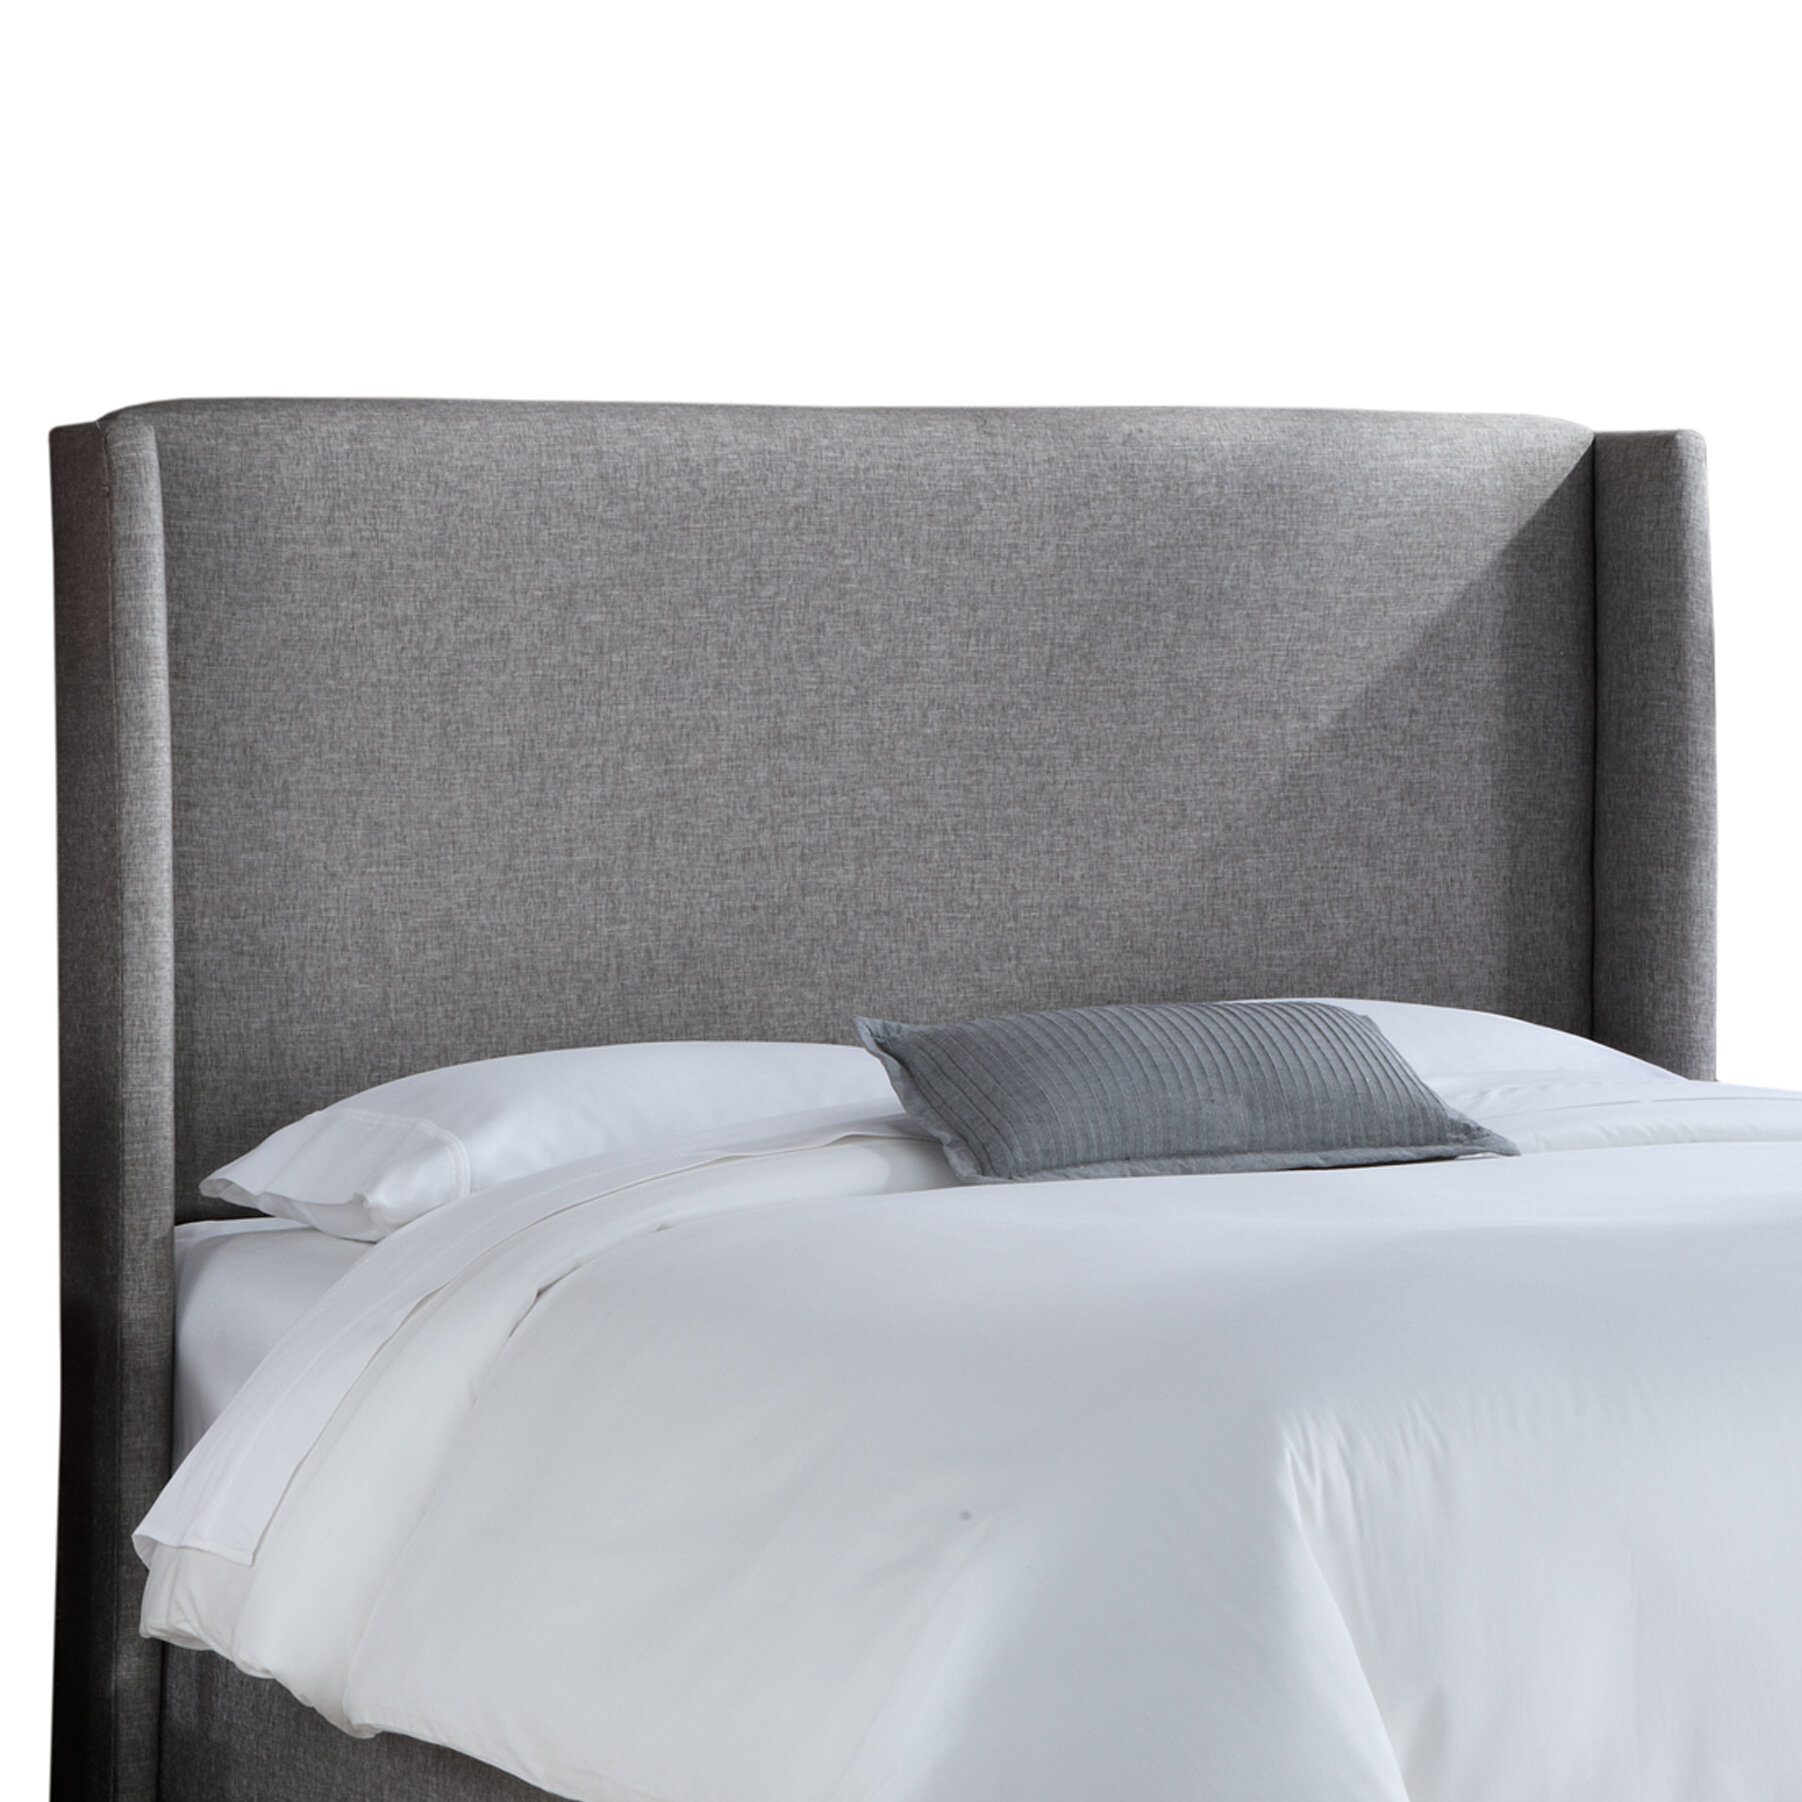 tufted copy for color size gray headboard elegant upholstered wingback high awesome advice